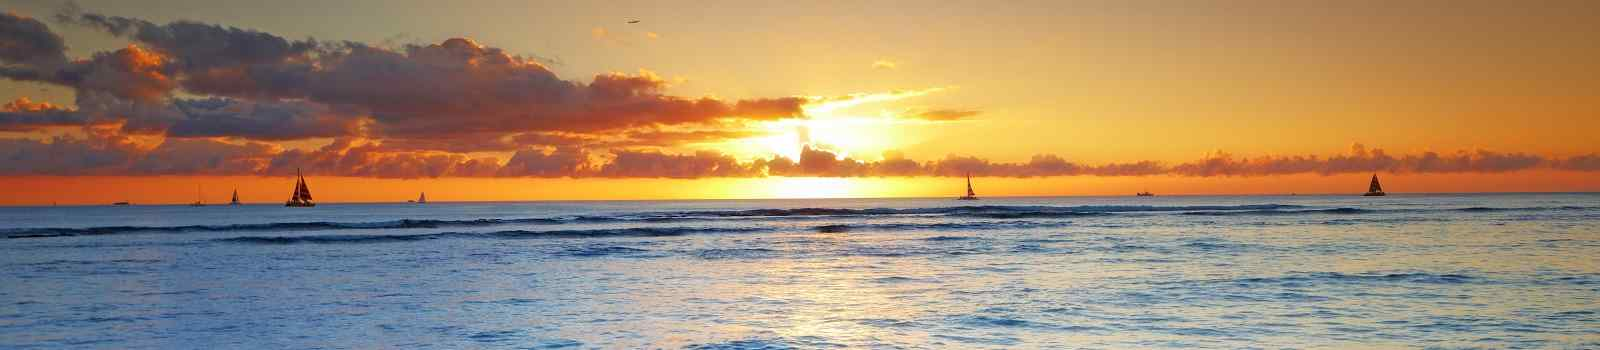 INSIDER-HAWAII -Hawaii sunset Waikiki panorama 94914793